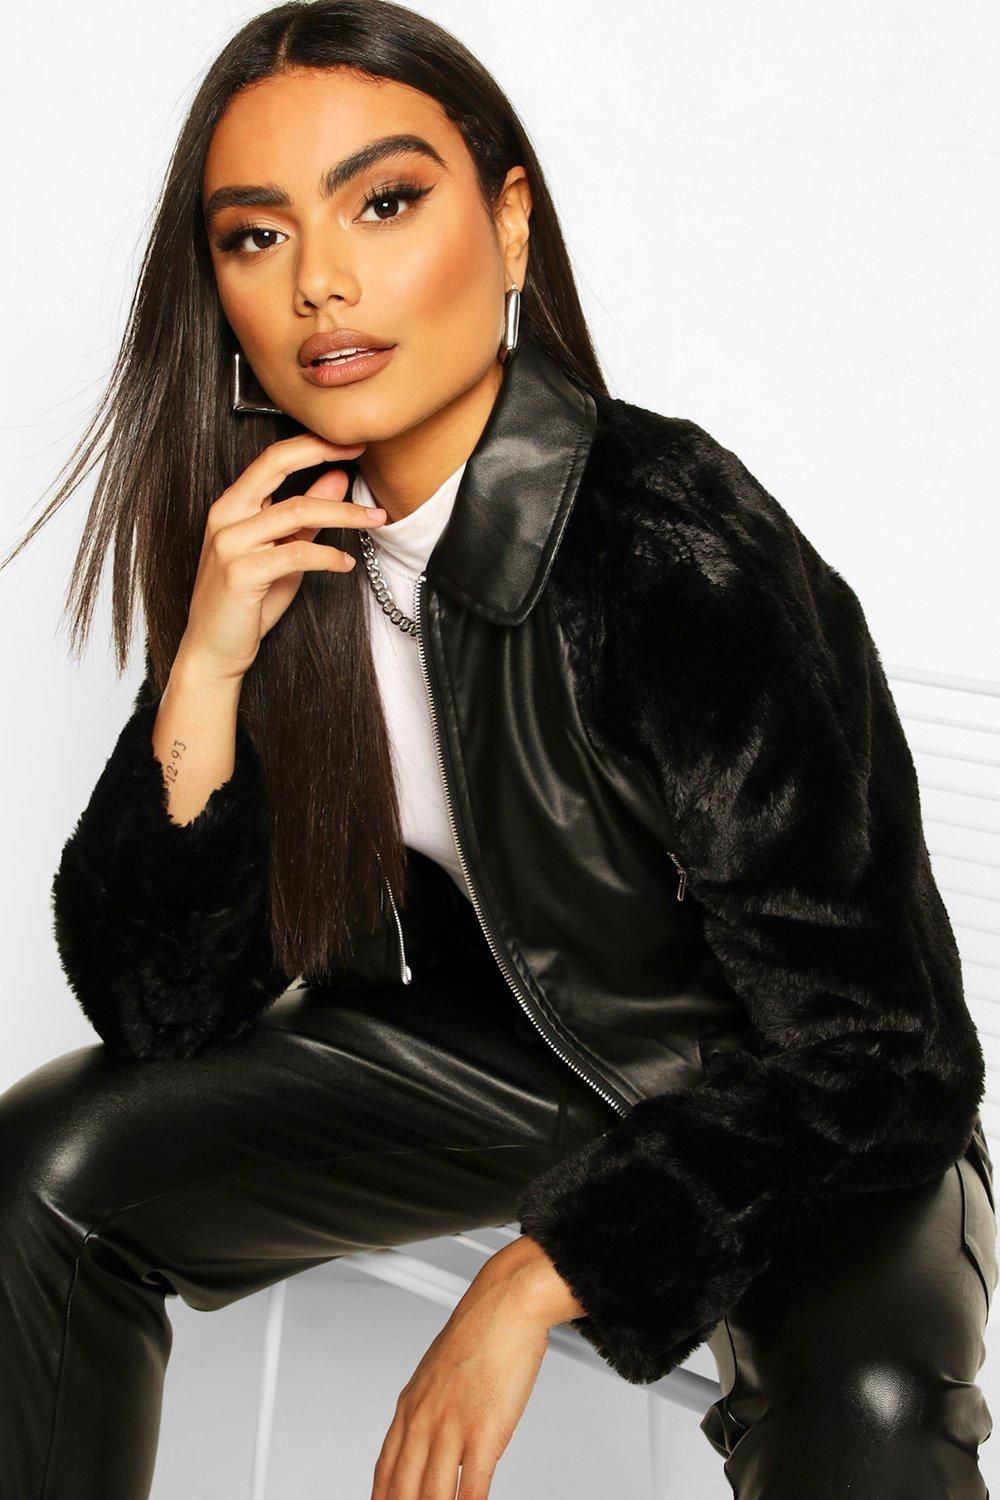 Faux Leather Faux Fur Sleeve Bomber Jacket Boohoo Bomber Jacket Black Bomber Jacket Womens Skirt Outfits [ 1500 x 1000 Pixel ]